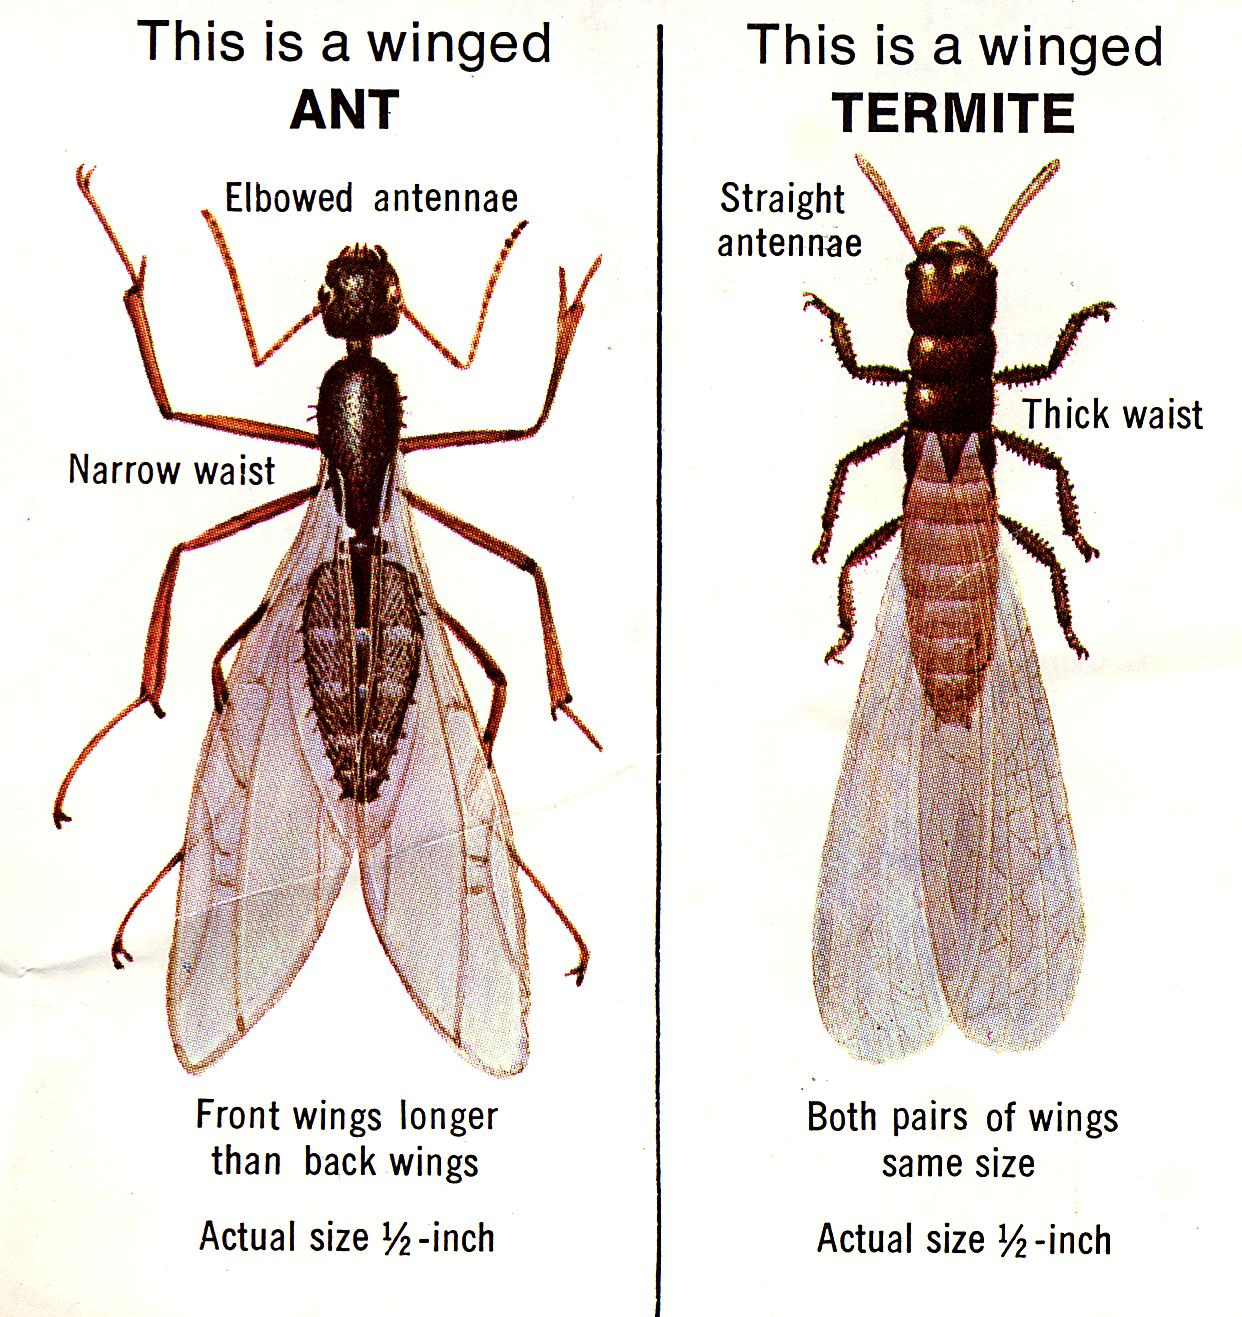 How Do Termites Get Their Food